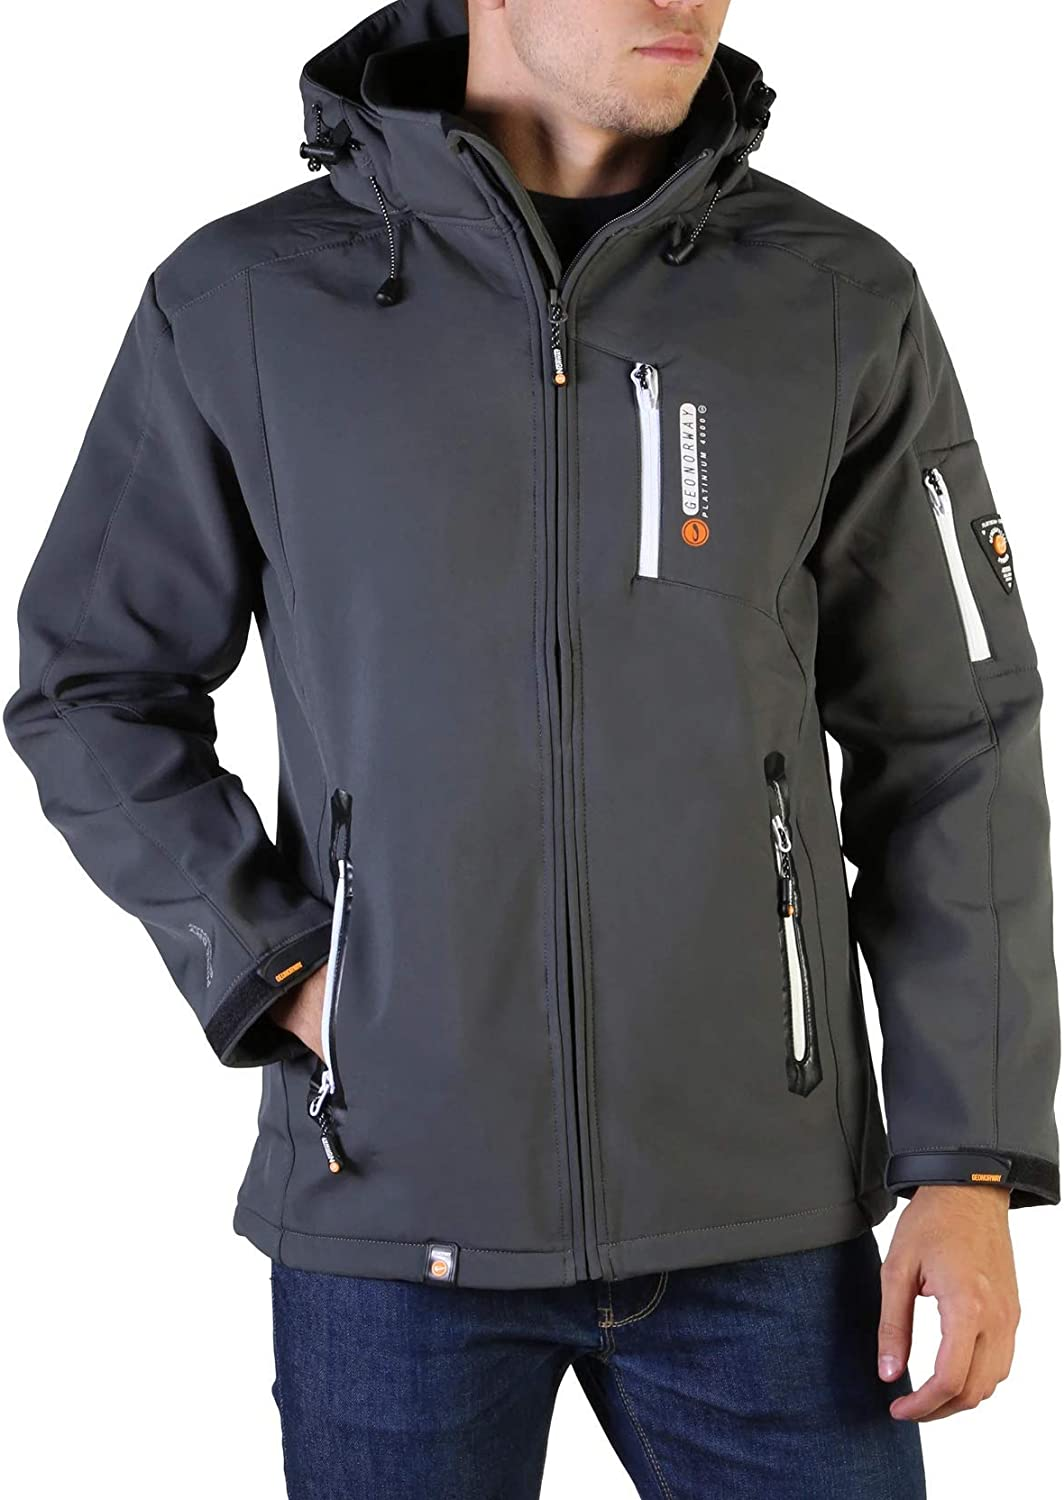 Geographical Norway - Tichri_man1